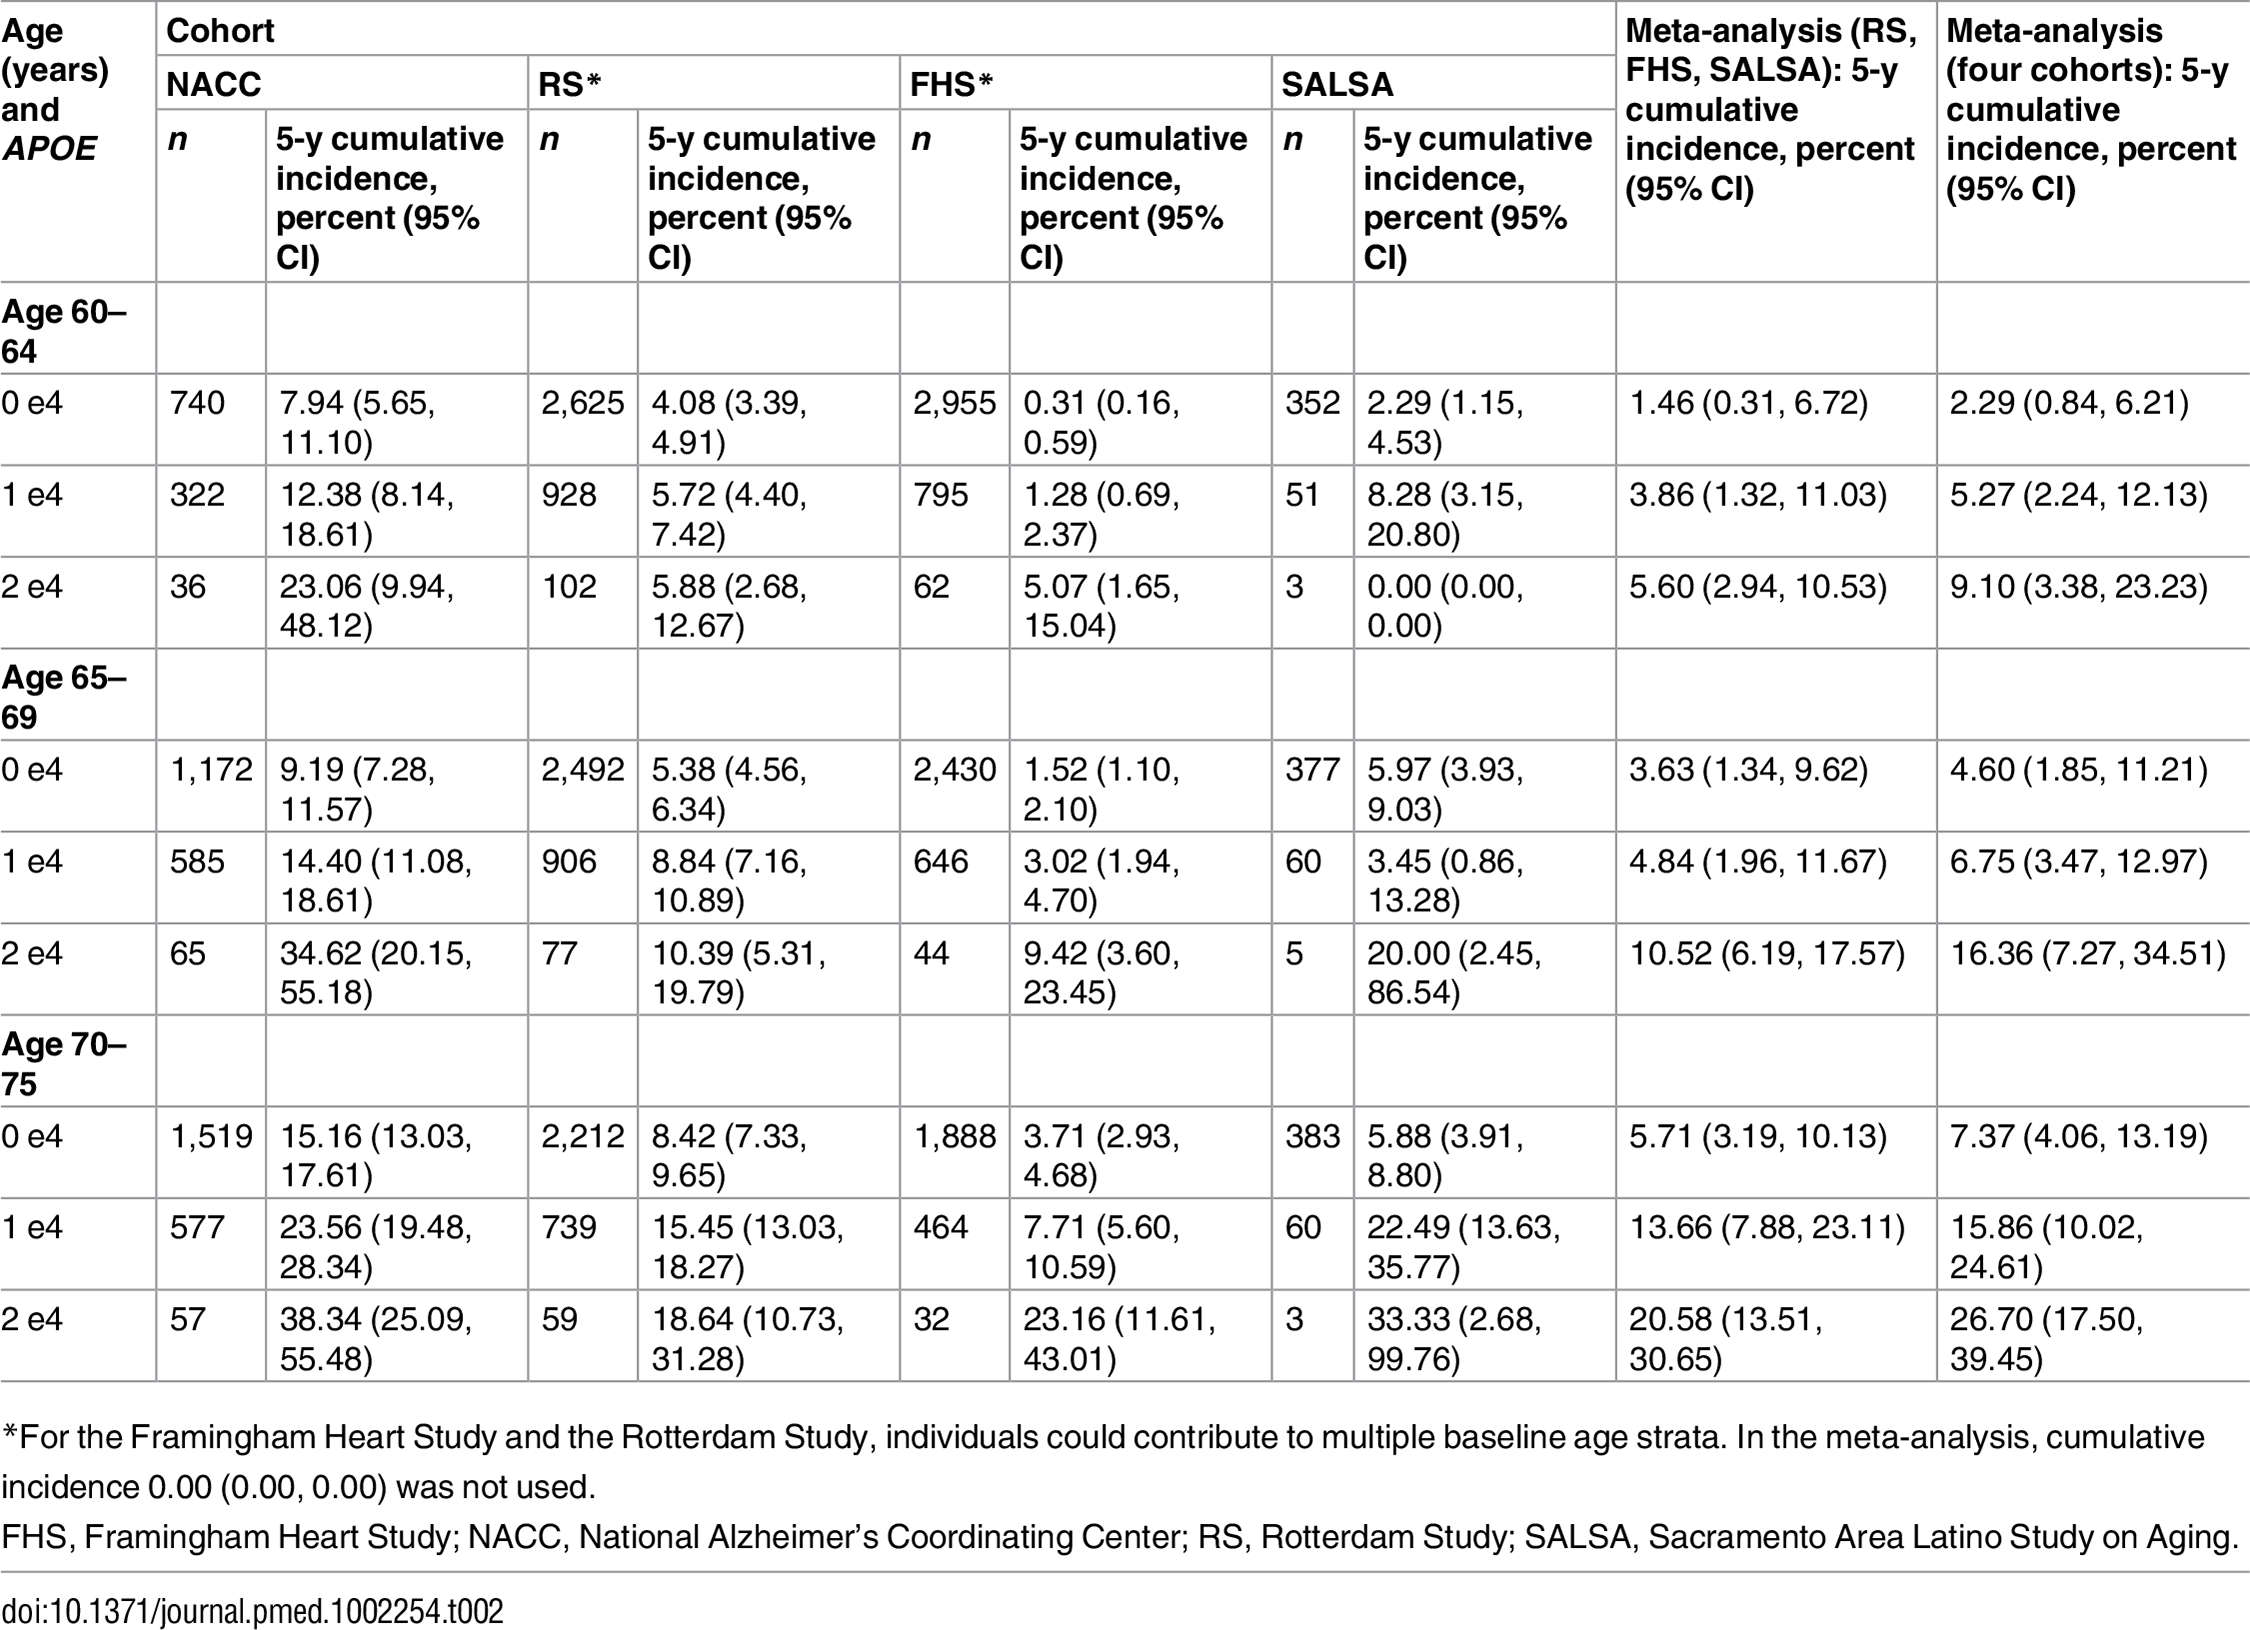 Five-year cumulative incidence of mild cognitive impairment/dementia by baseline age and <i>APOE</i>-e4 dose.